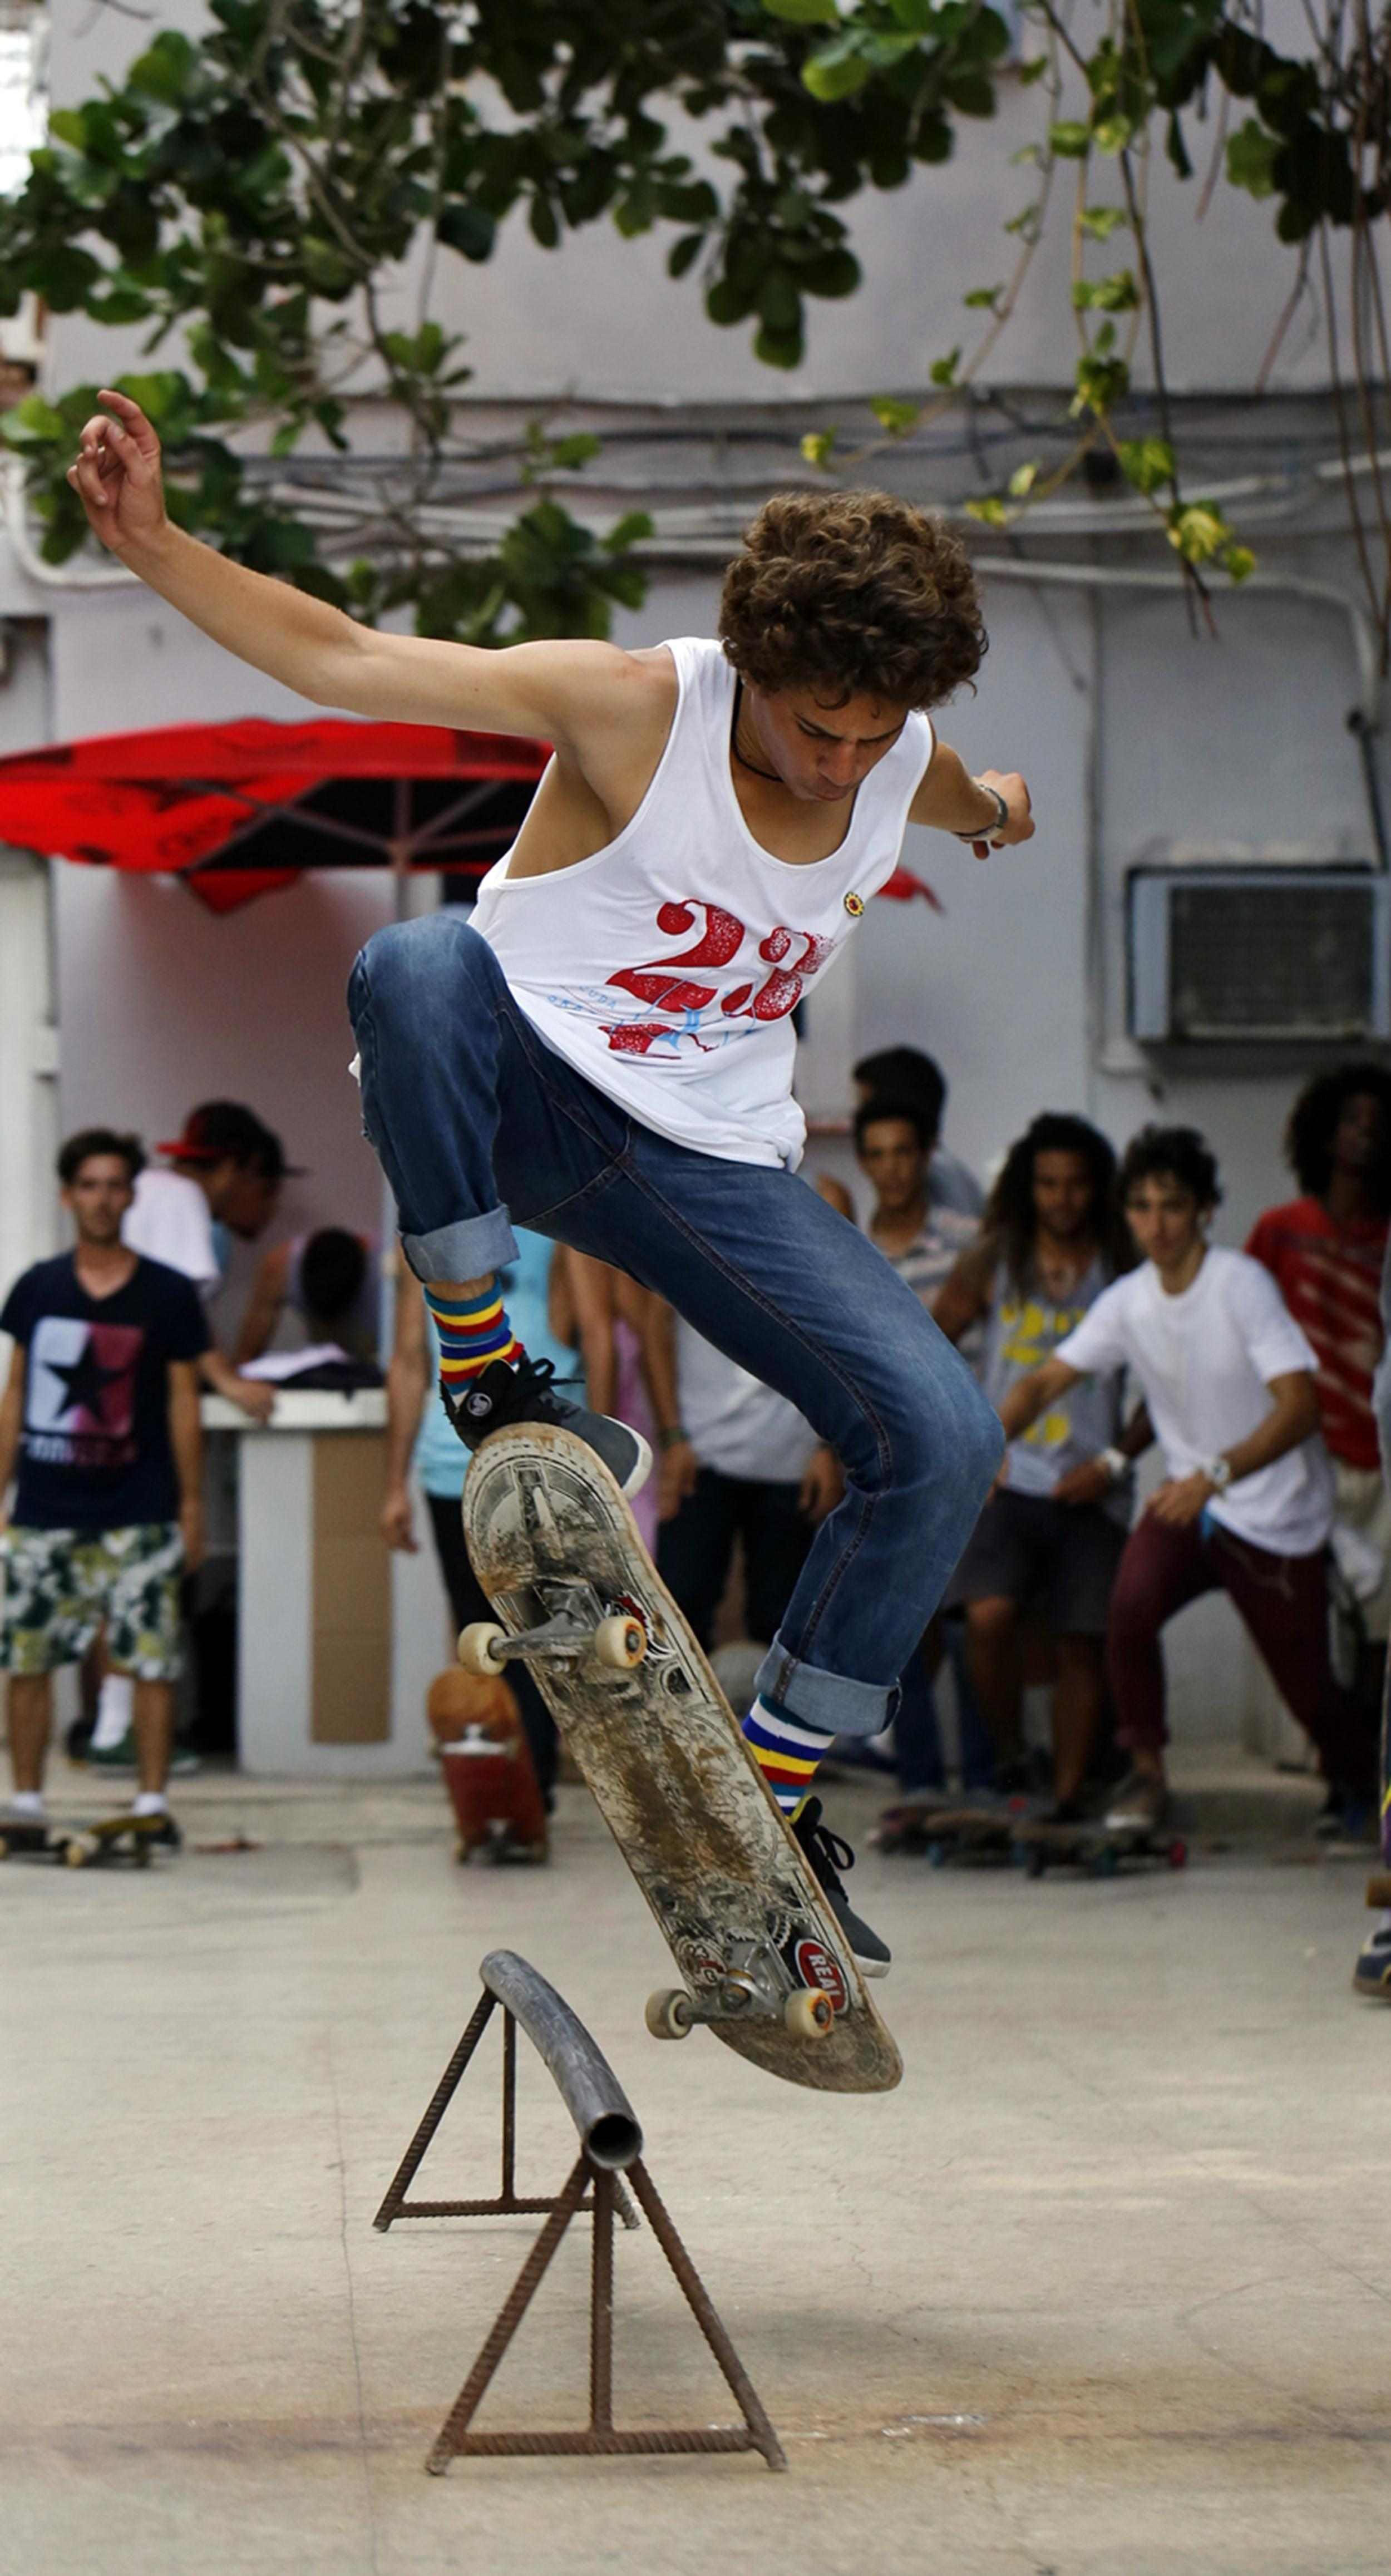 Image: A Cuban skateboarder, part of the